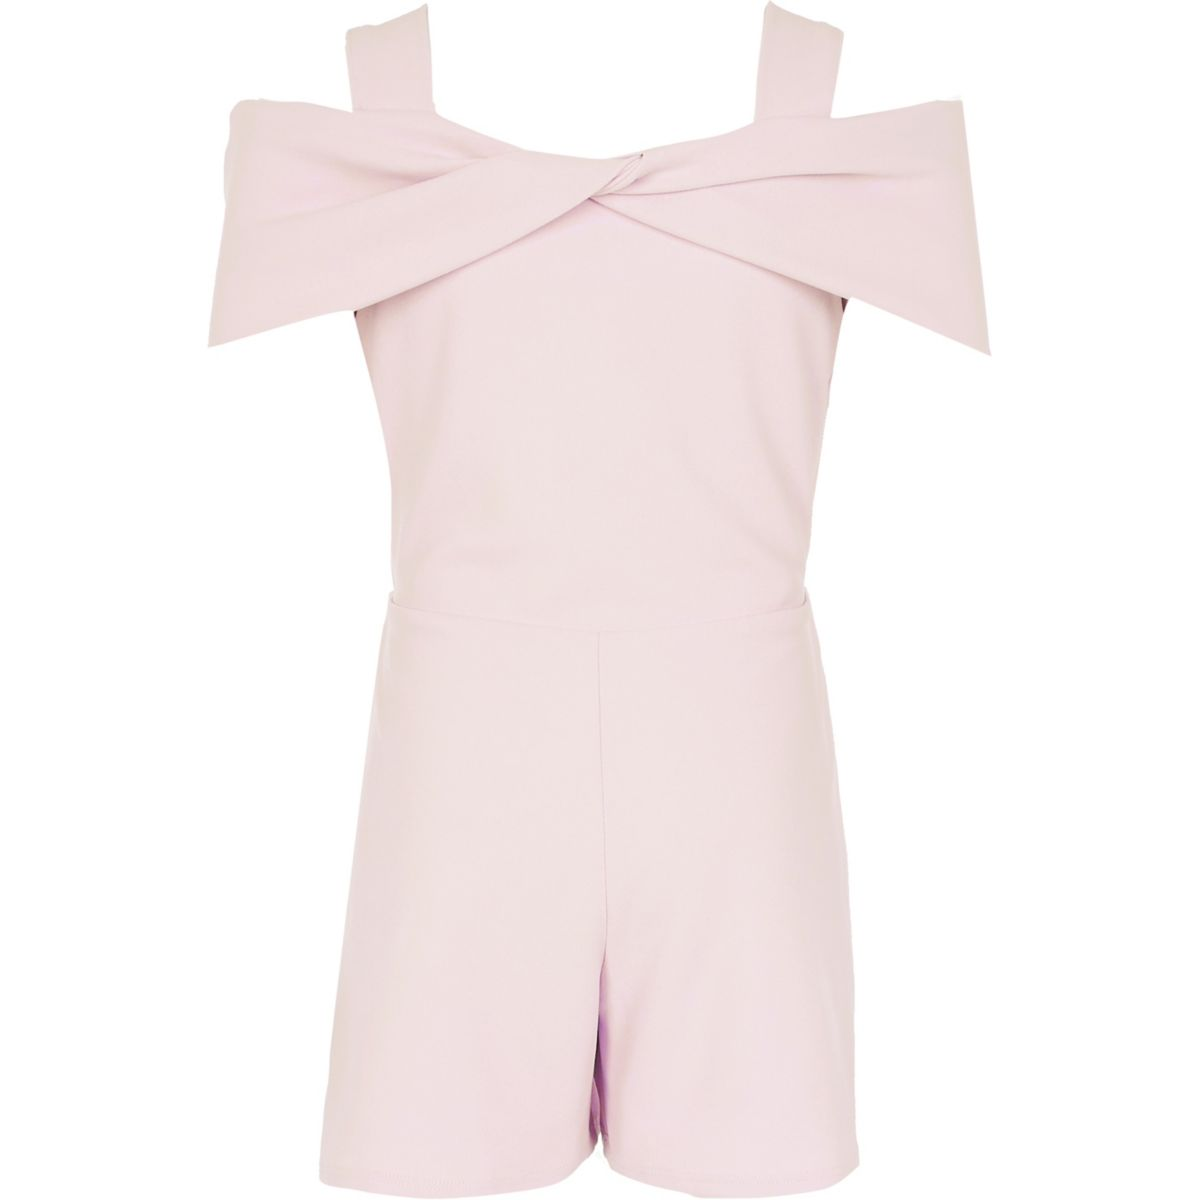 Girls light pink bow cold shoulder romper